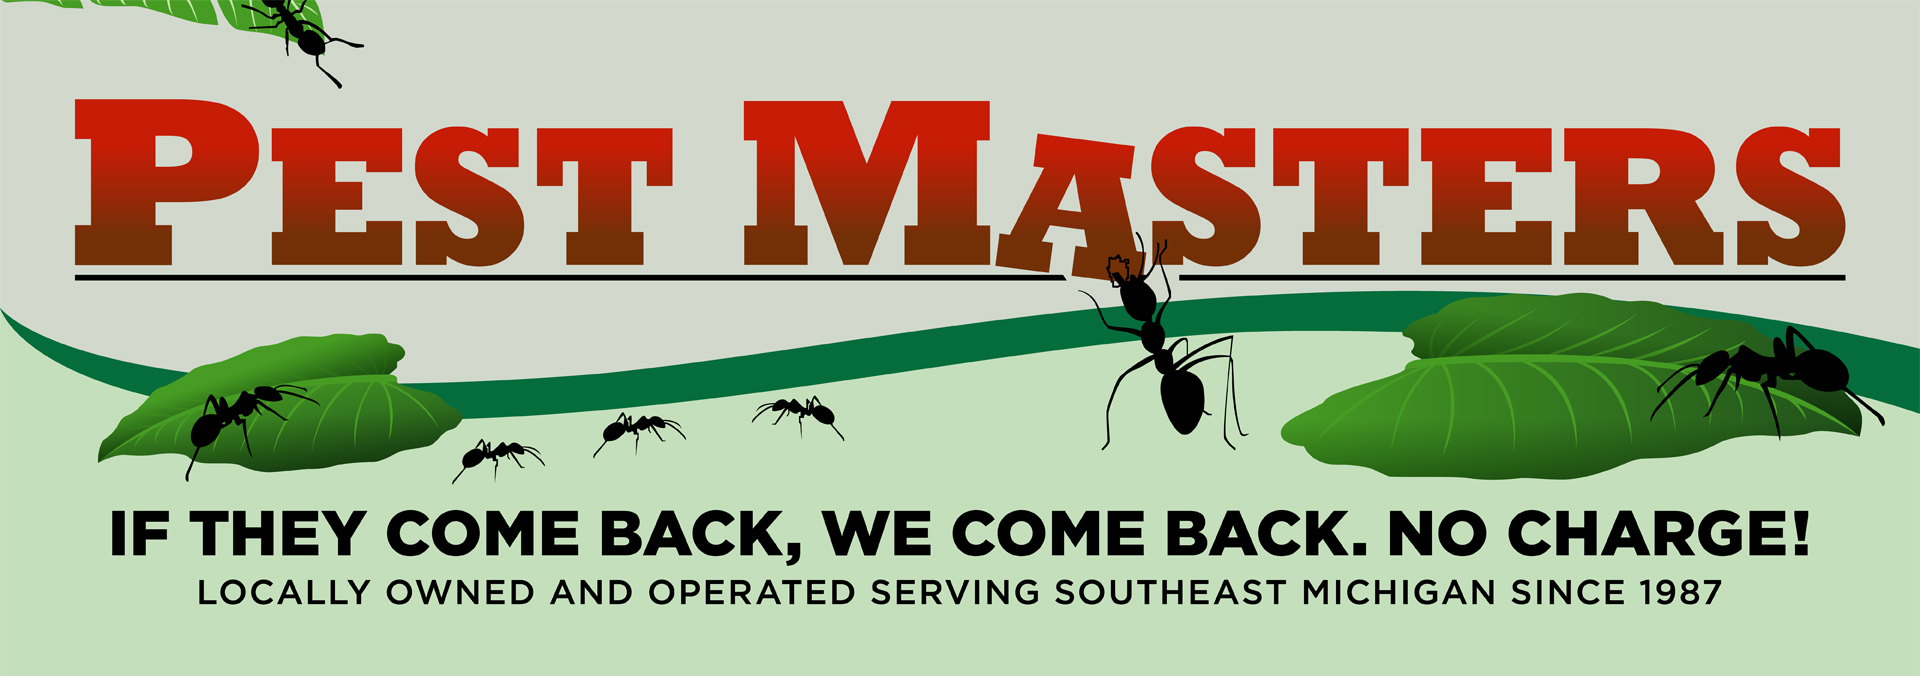 Pest Masters - Pest Control Services in Michigan